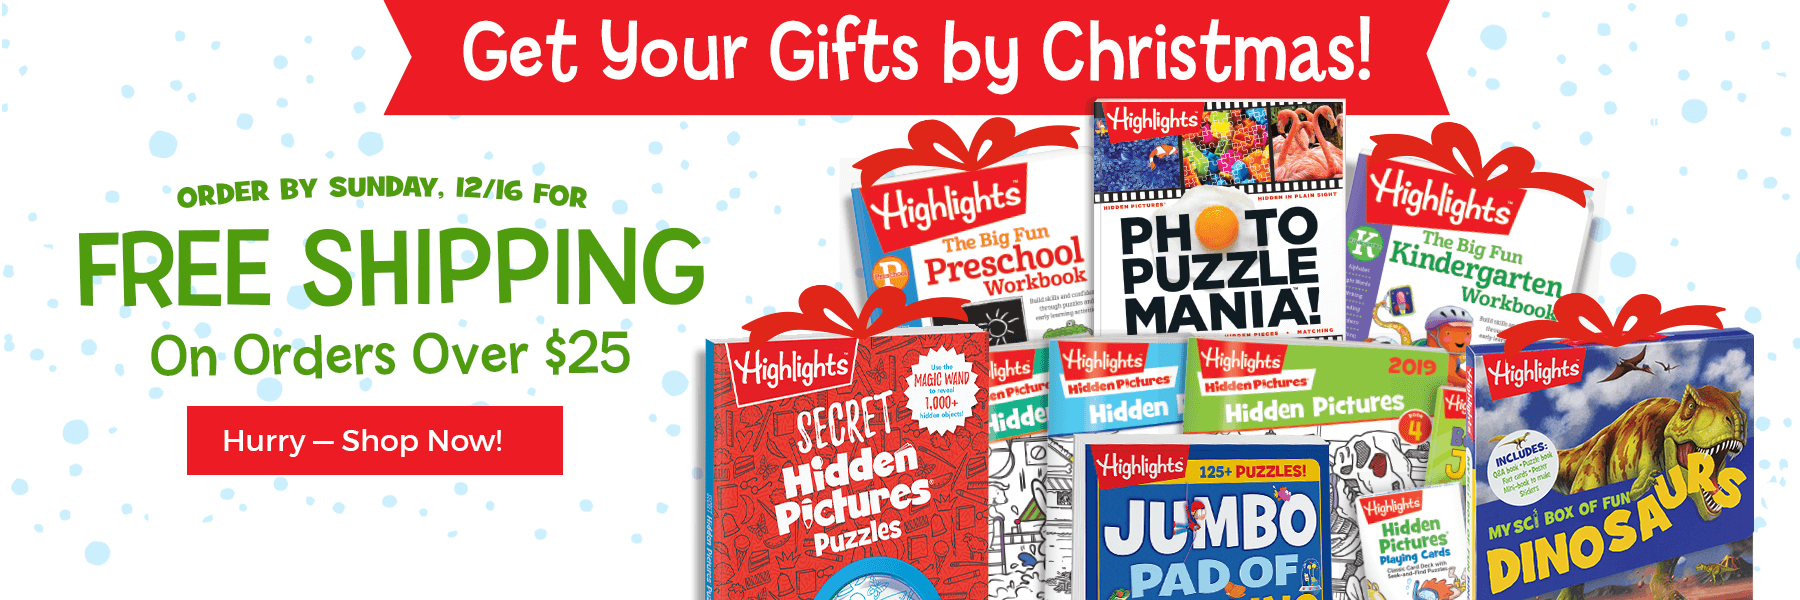 Get gifts by Christmas! Order by Sunday, 12/16 for free shipping on orders over $25.